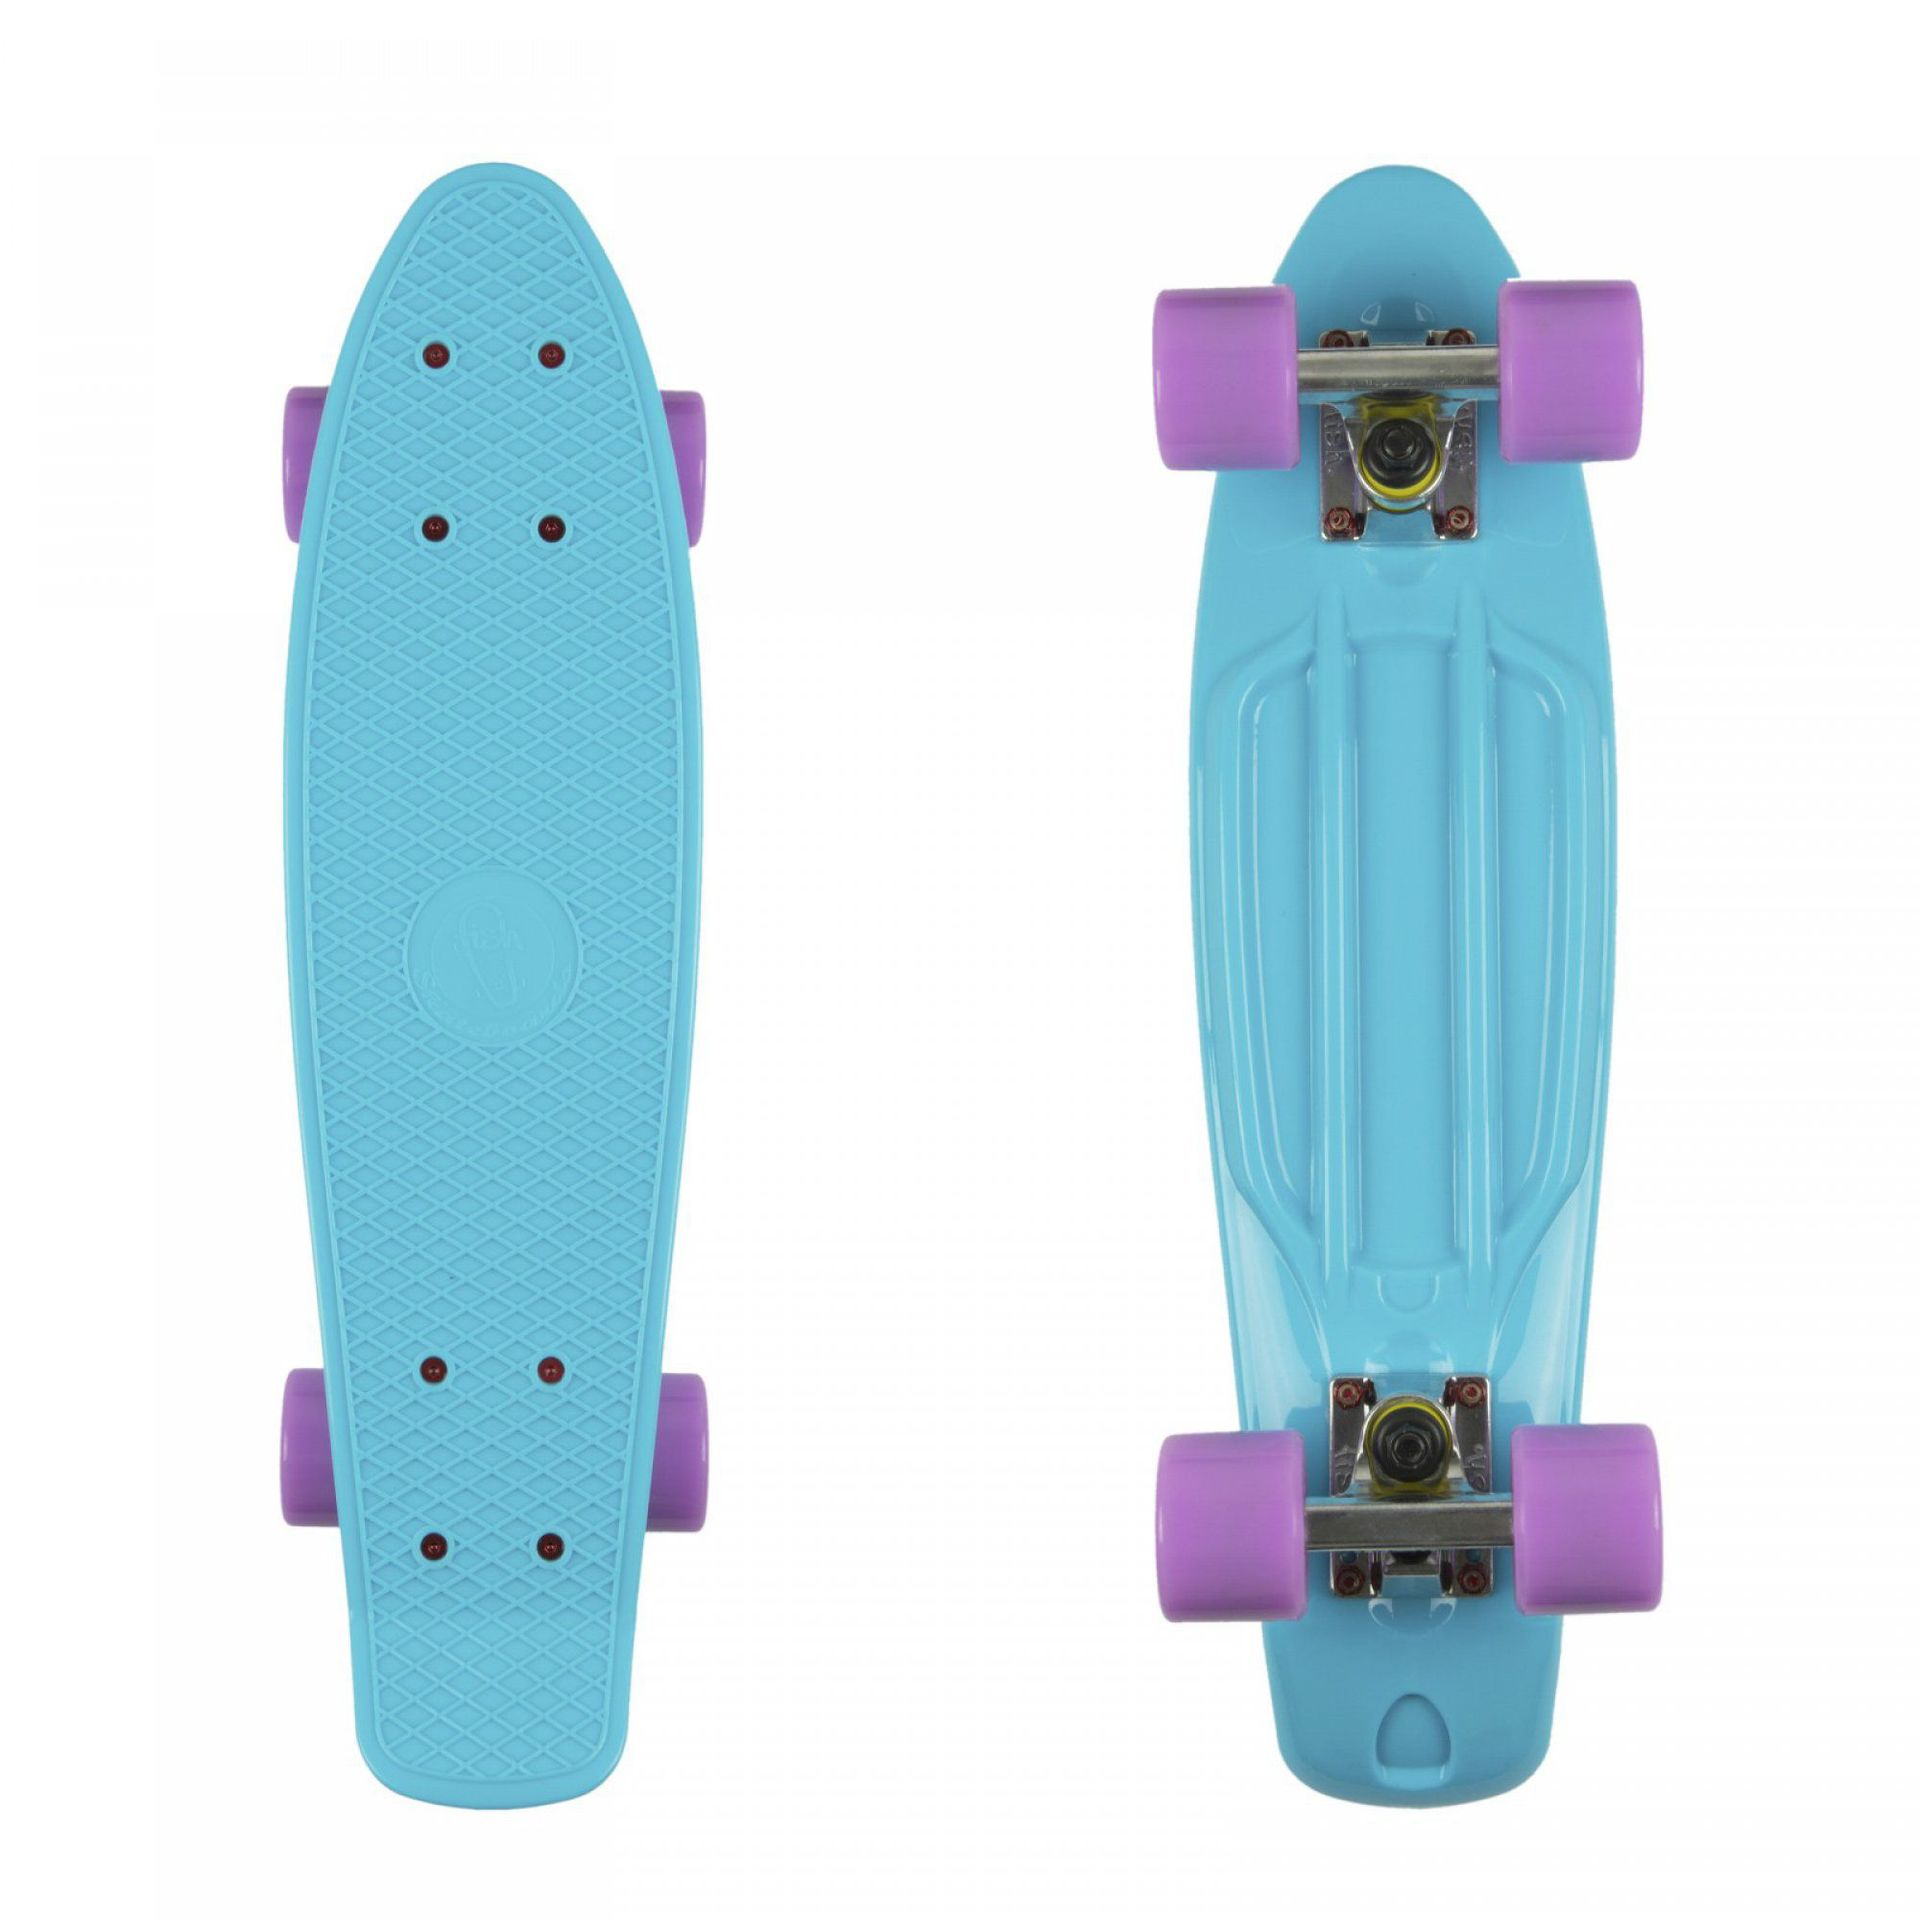 FISHBOARD FISH SKATEBOARDS CLASSIC SUMMER BLUE|SILVER|SUMMER PURPLE 1